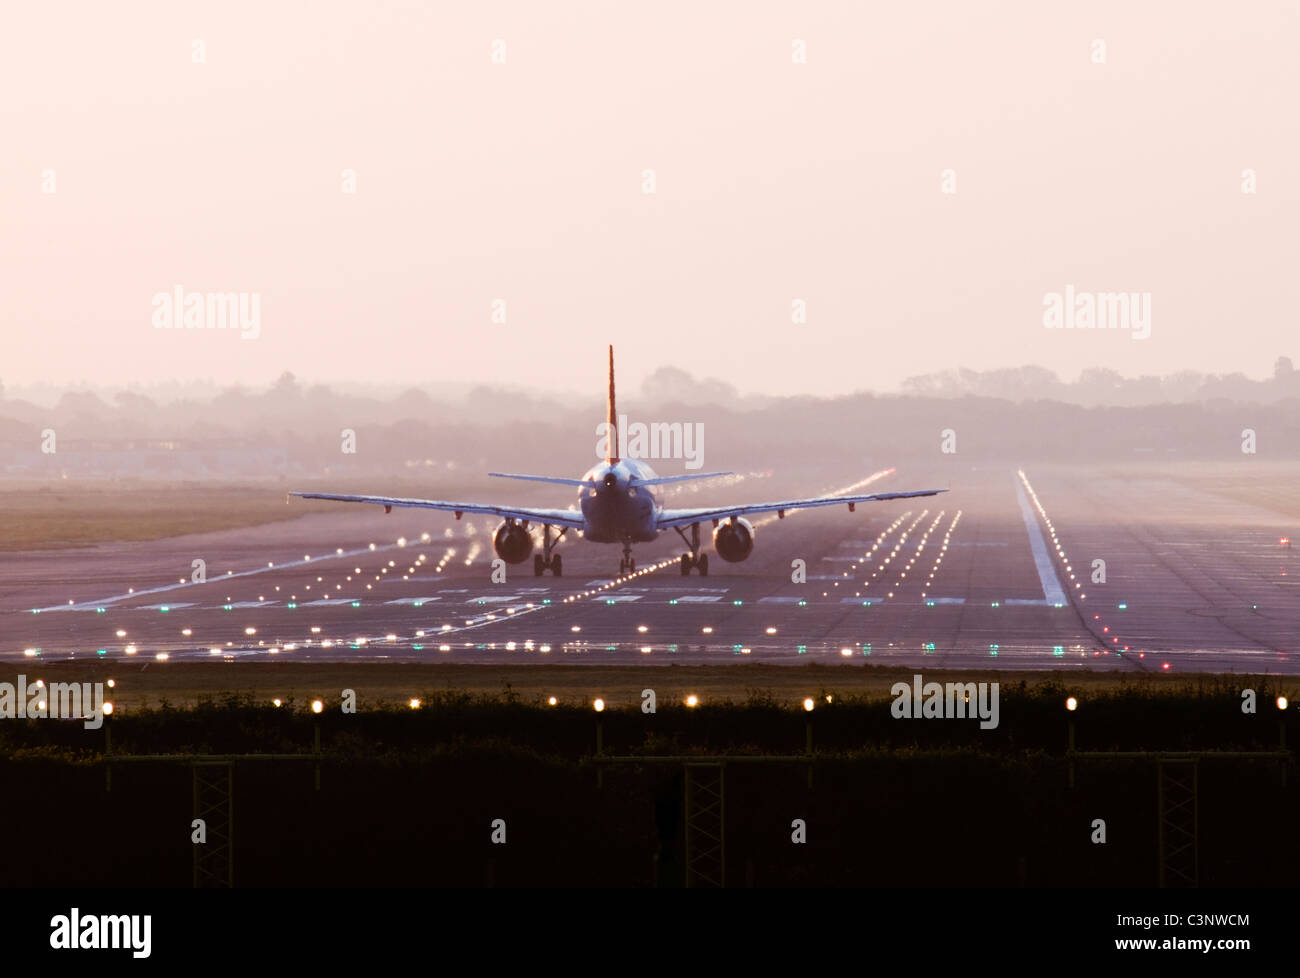 Aircraft about to take off. Gatwick, UK. - Stock Image